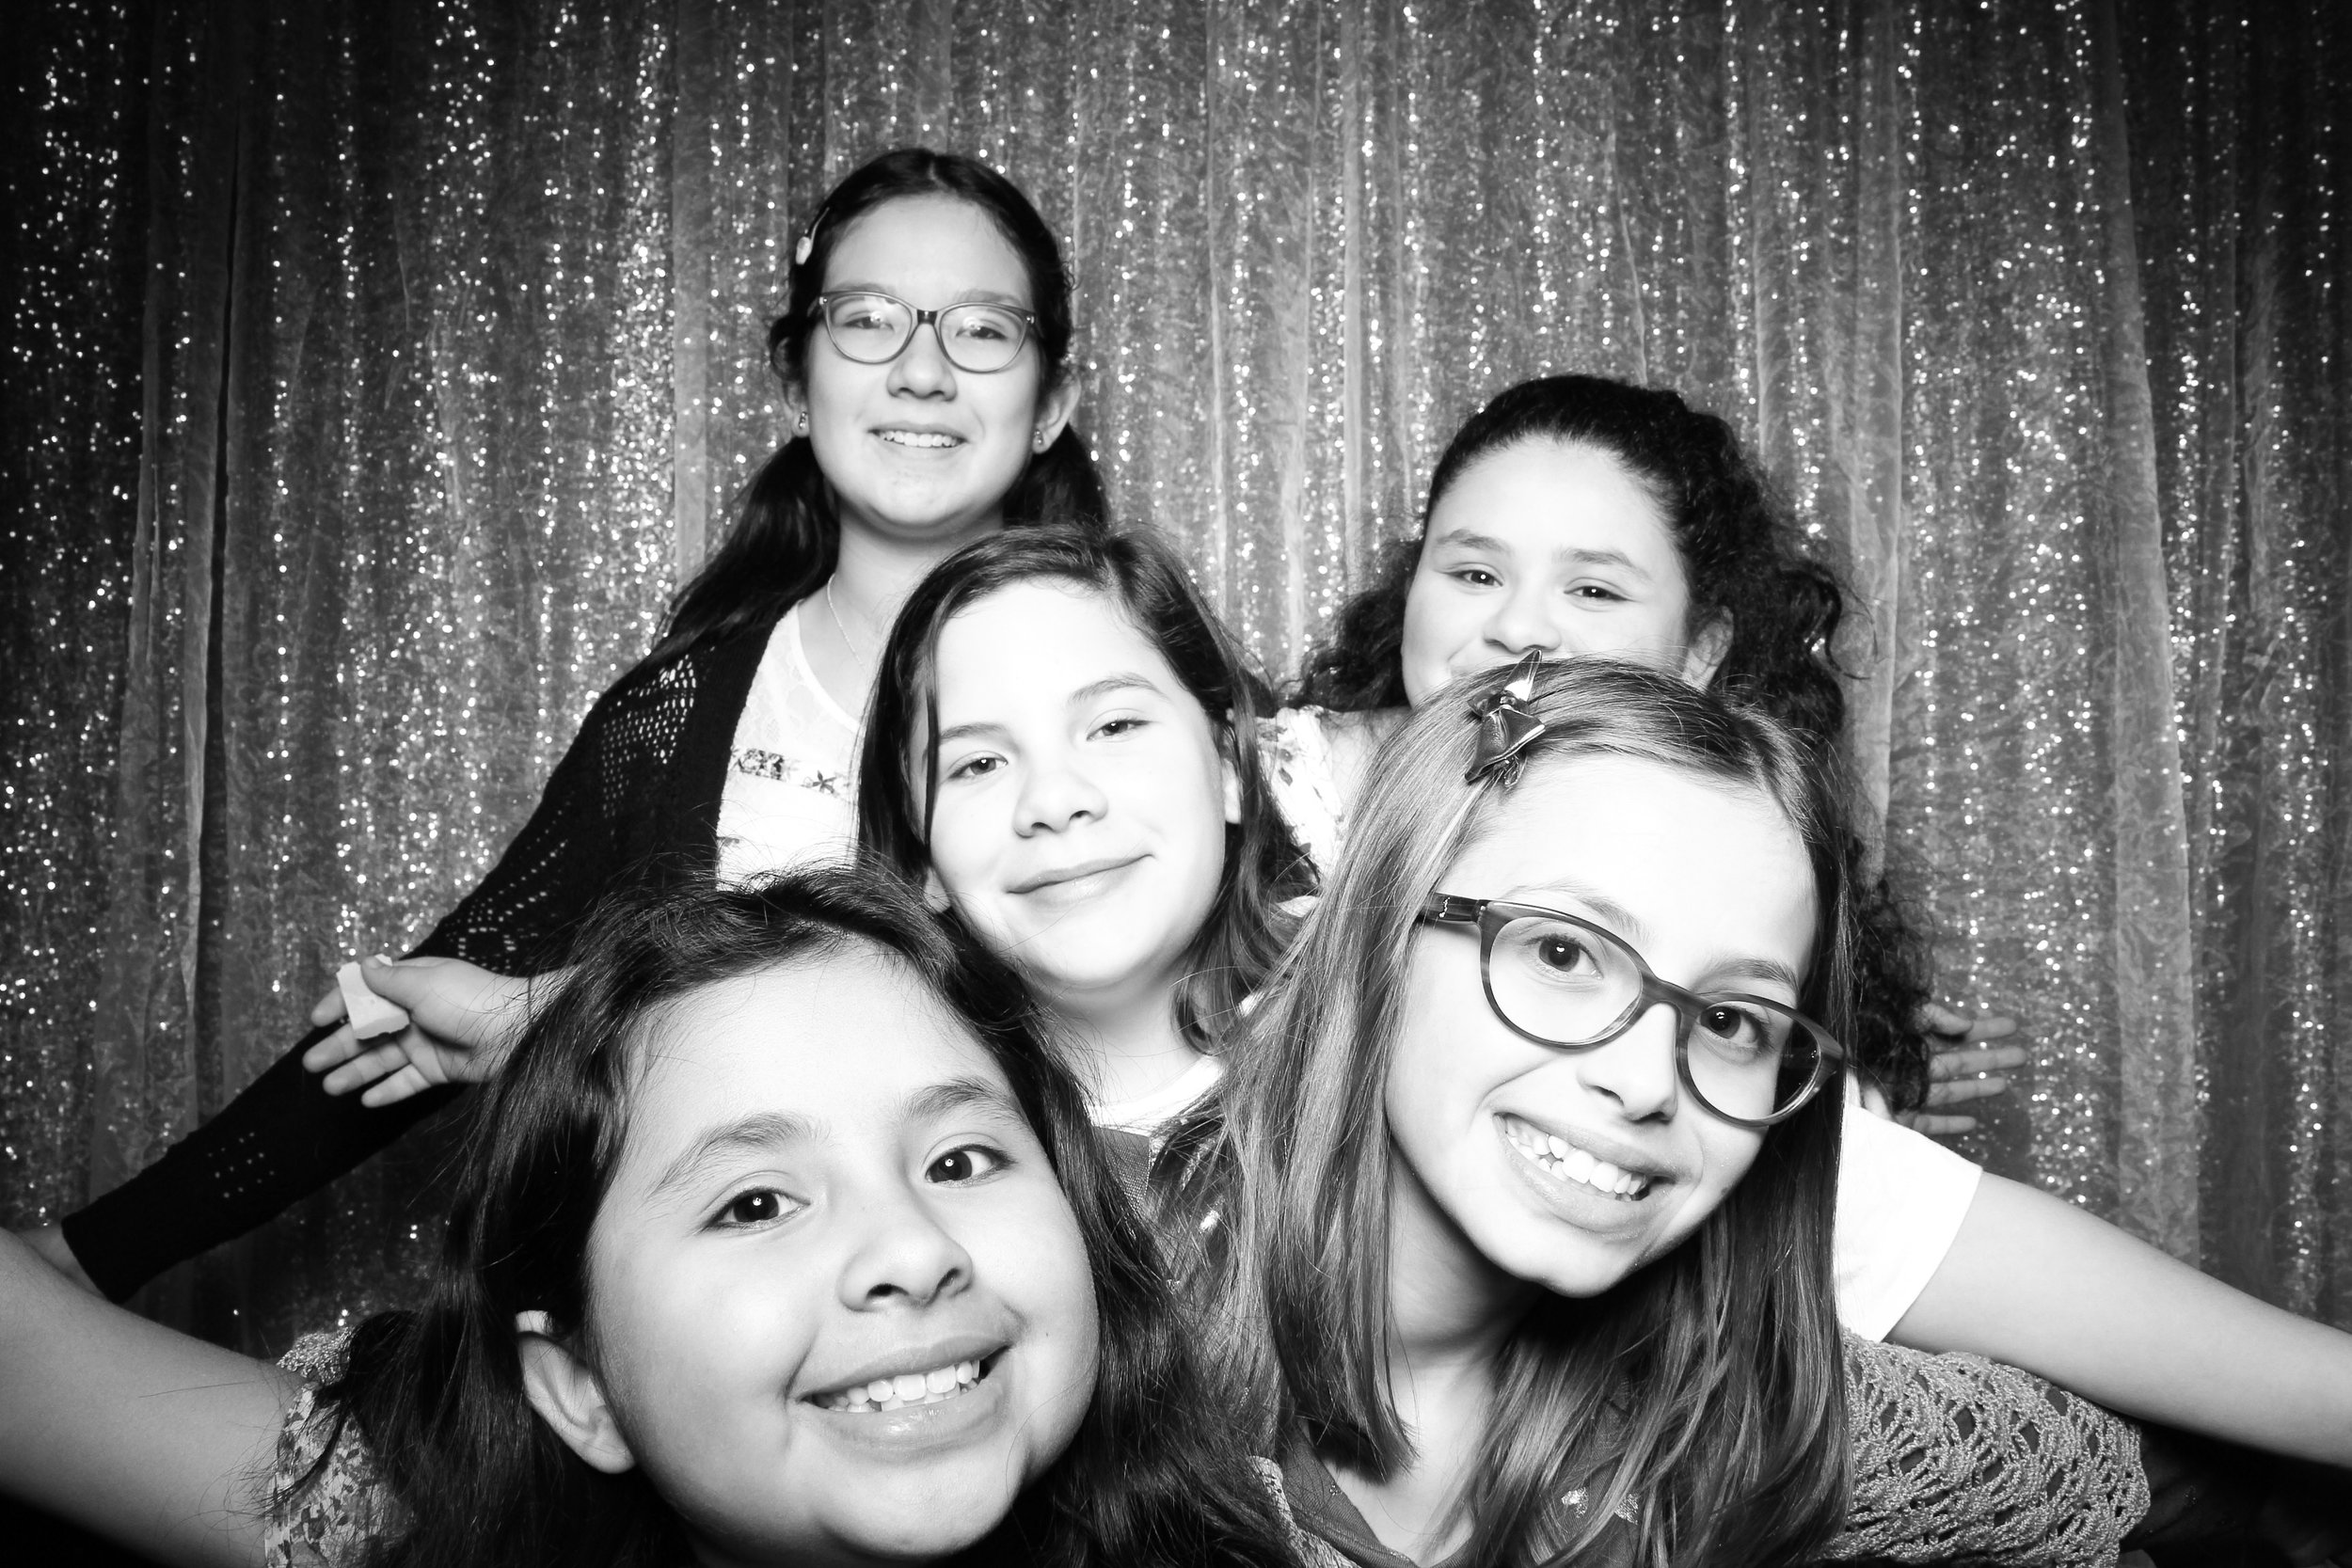 Chicago_Vintage_Wedding_Photobooth_Downers_Grove_12.jpg